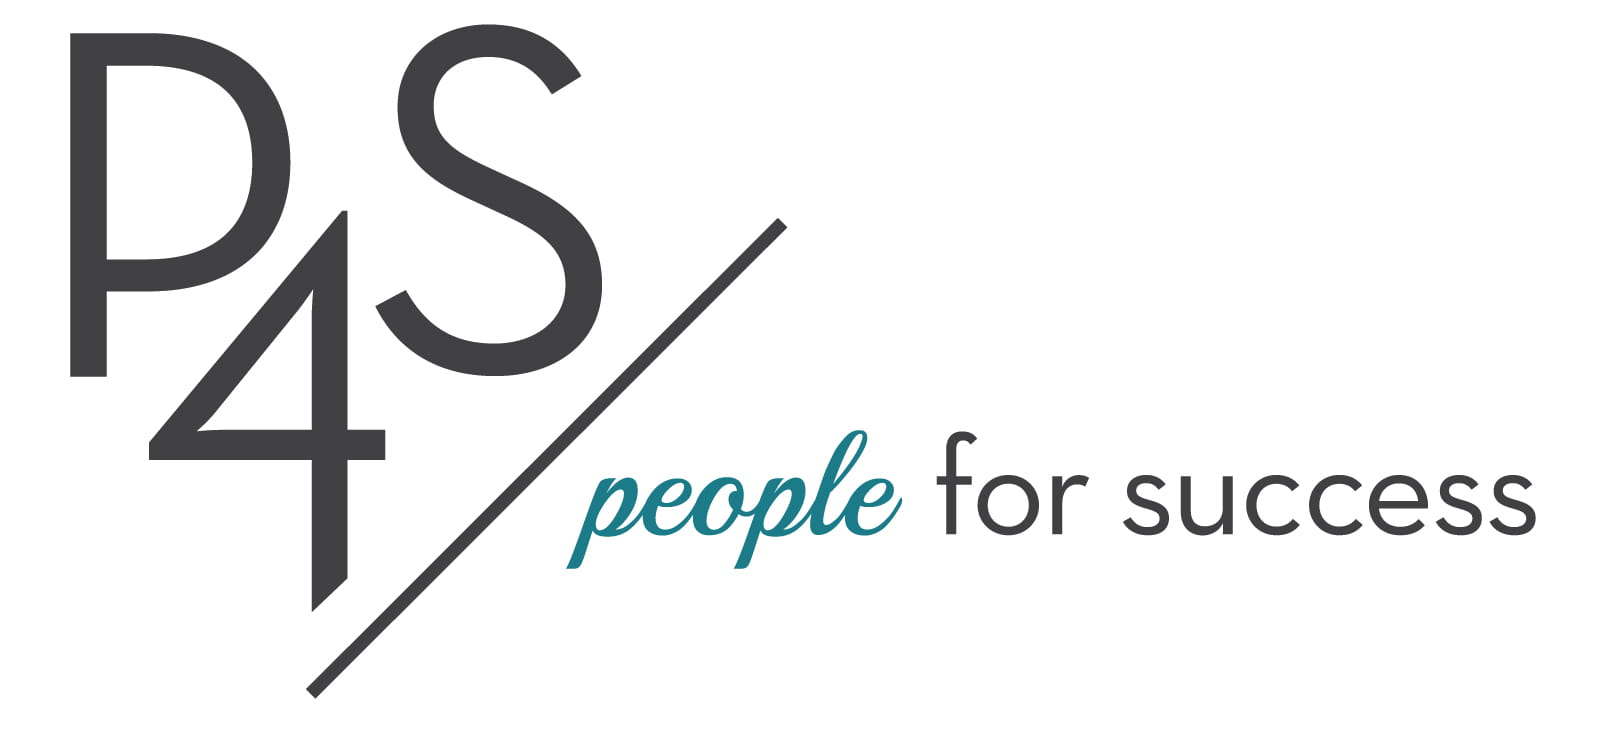 P4S - people for success